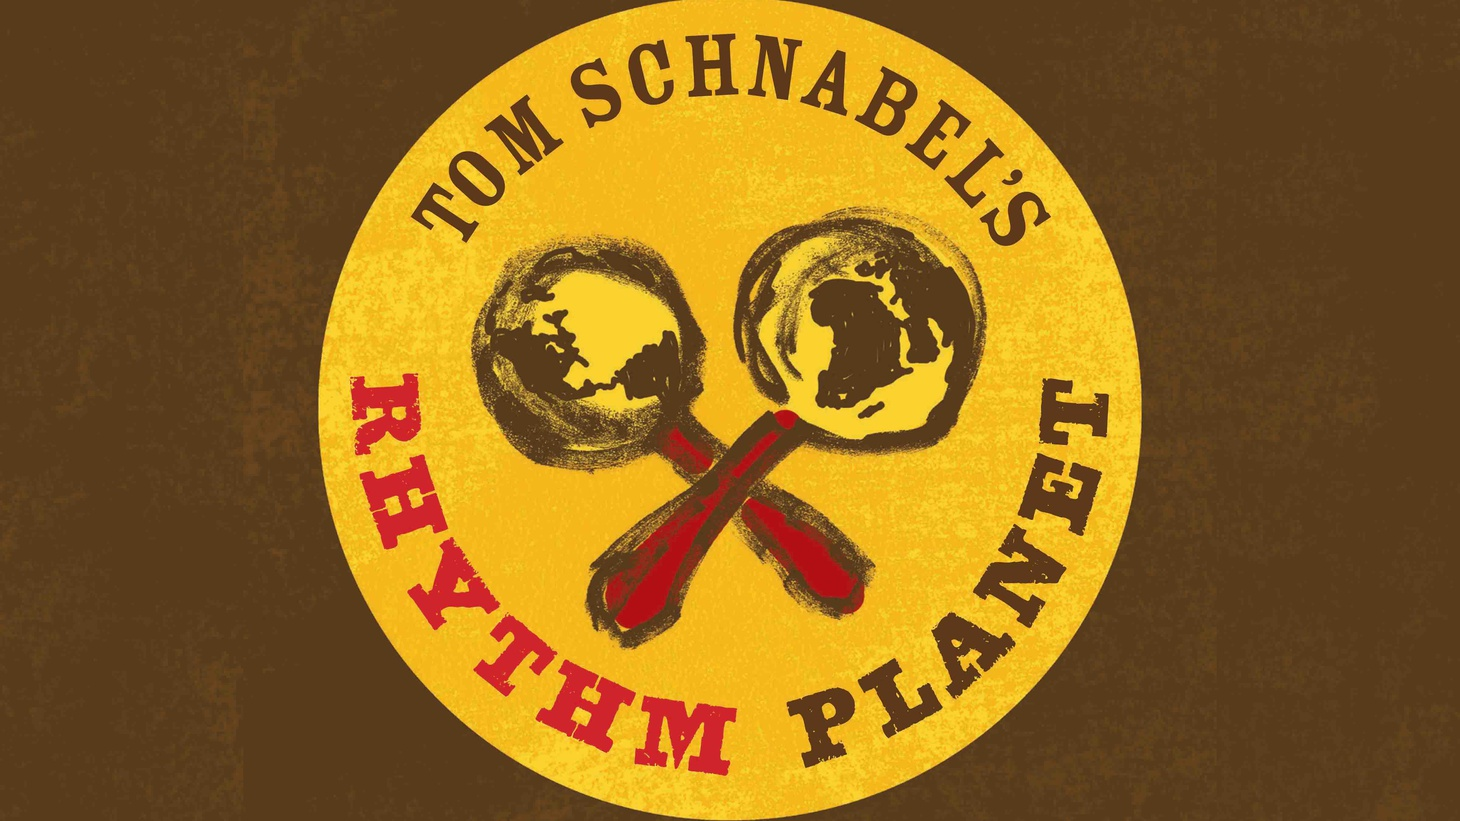 Tom Schnabel explores classic and forceful African music from the 1960s and 1970s.